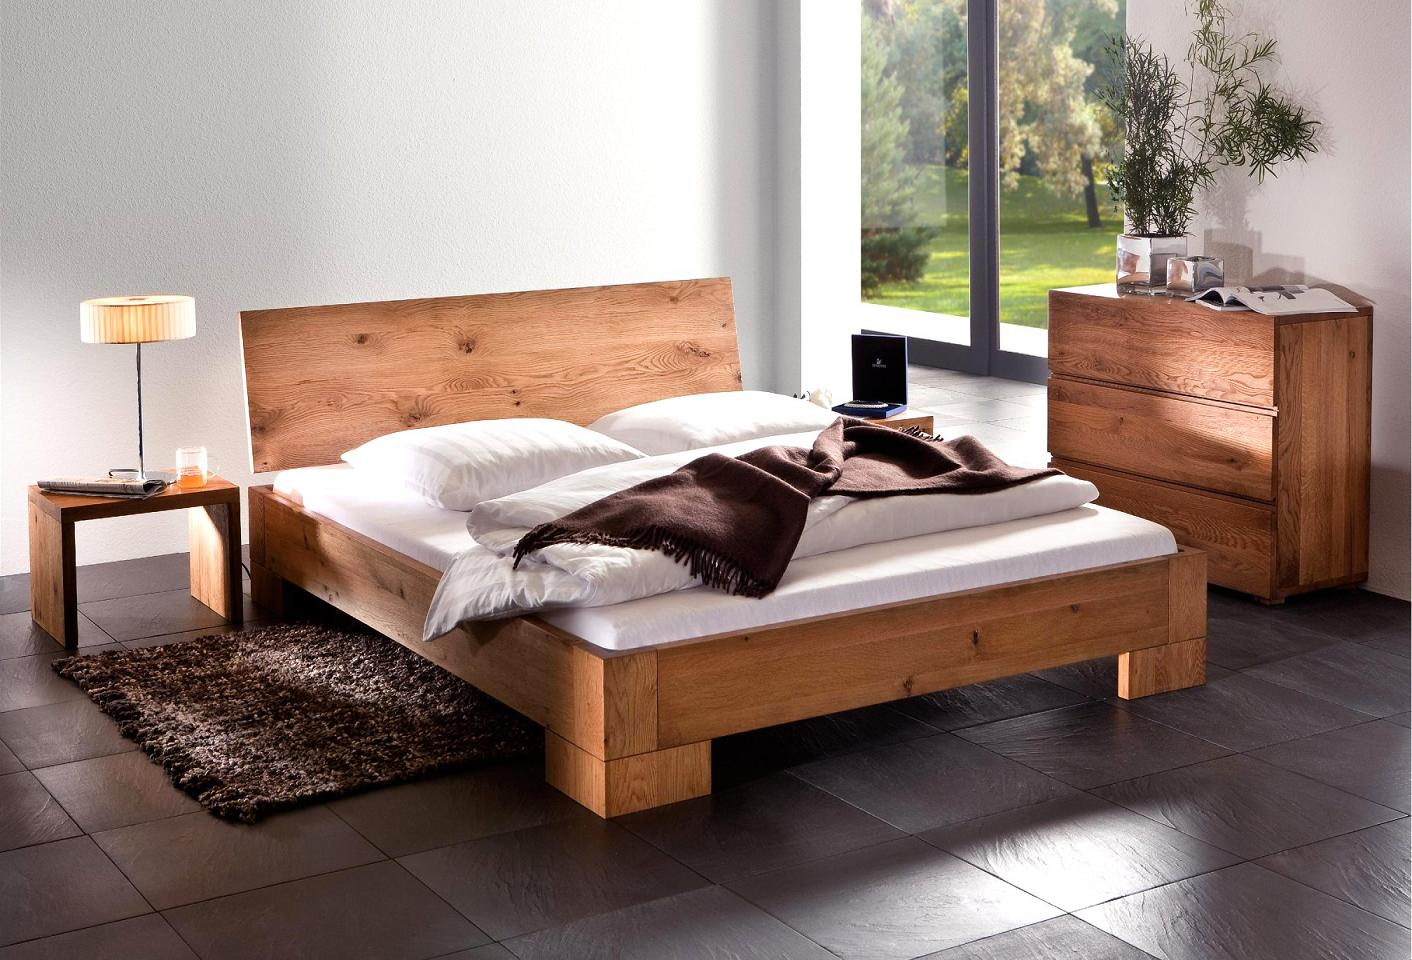 massivholz eiche g nstig kaufen m bel universum. Black Bedroom Furniture Sets. Home Design Ideas